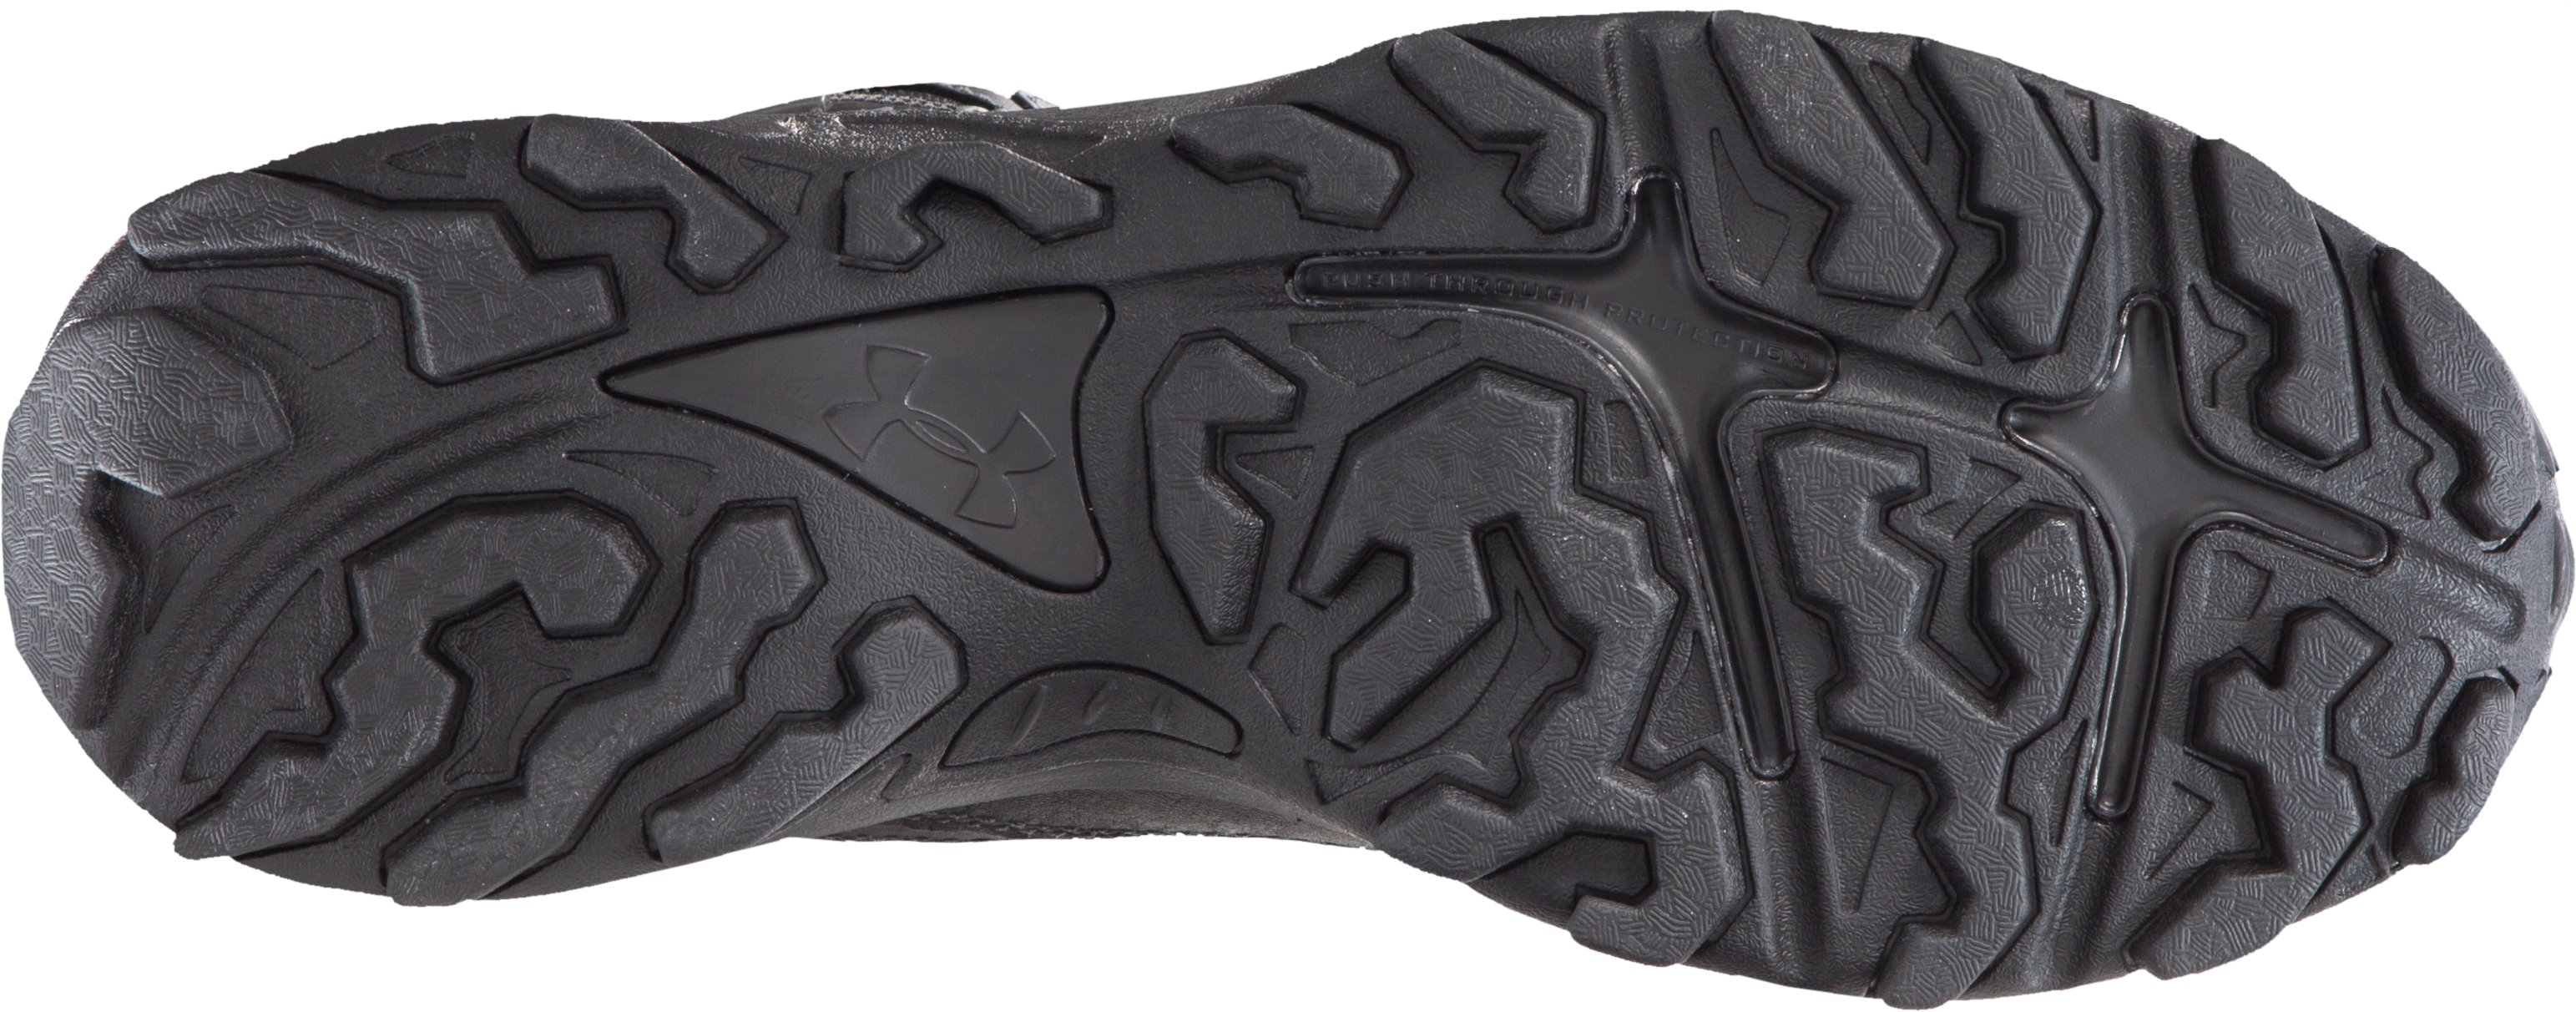 "Men's UA Speed Freek 7"" Boots, Black"